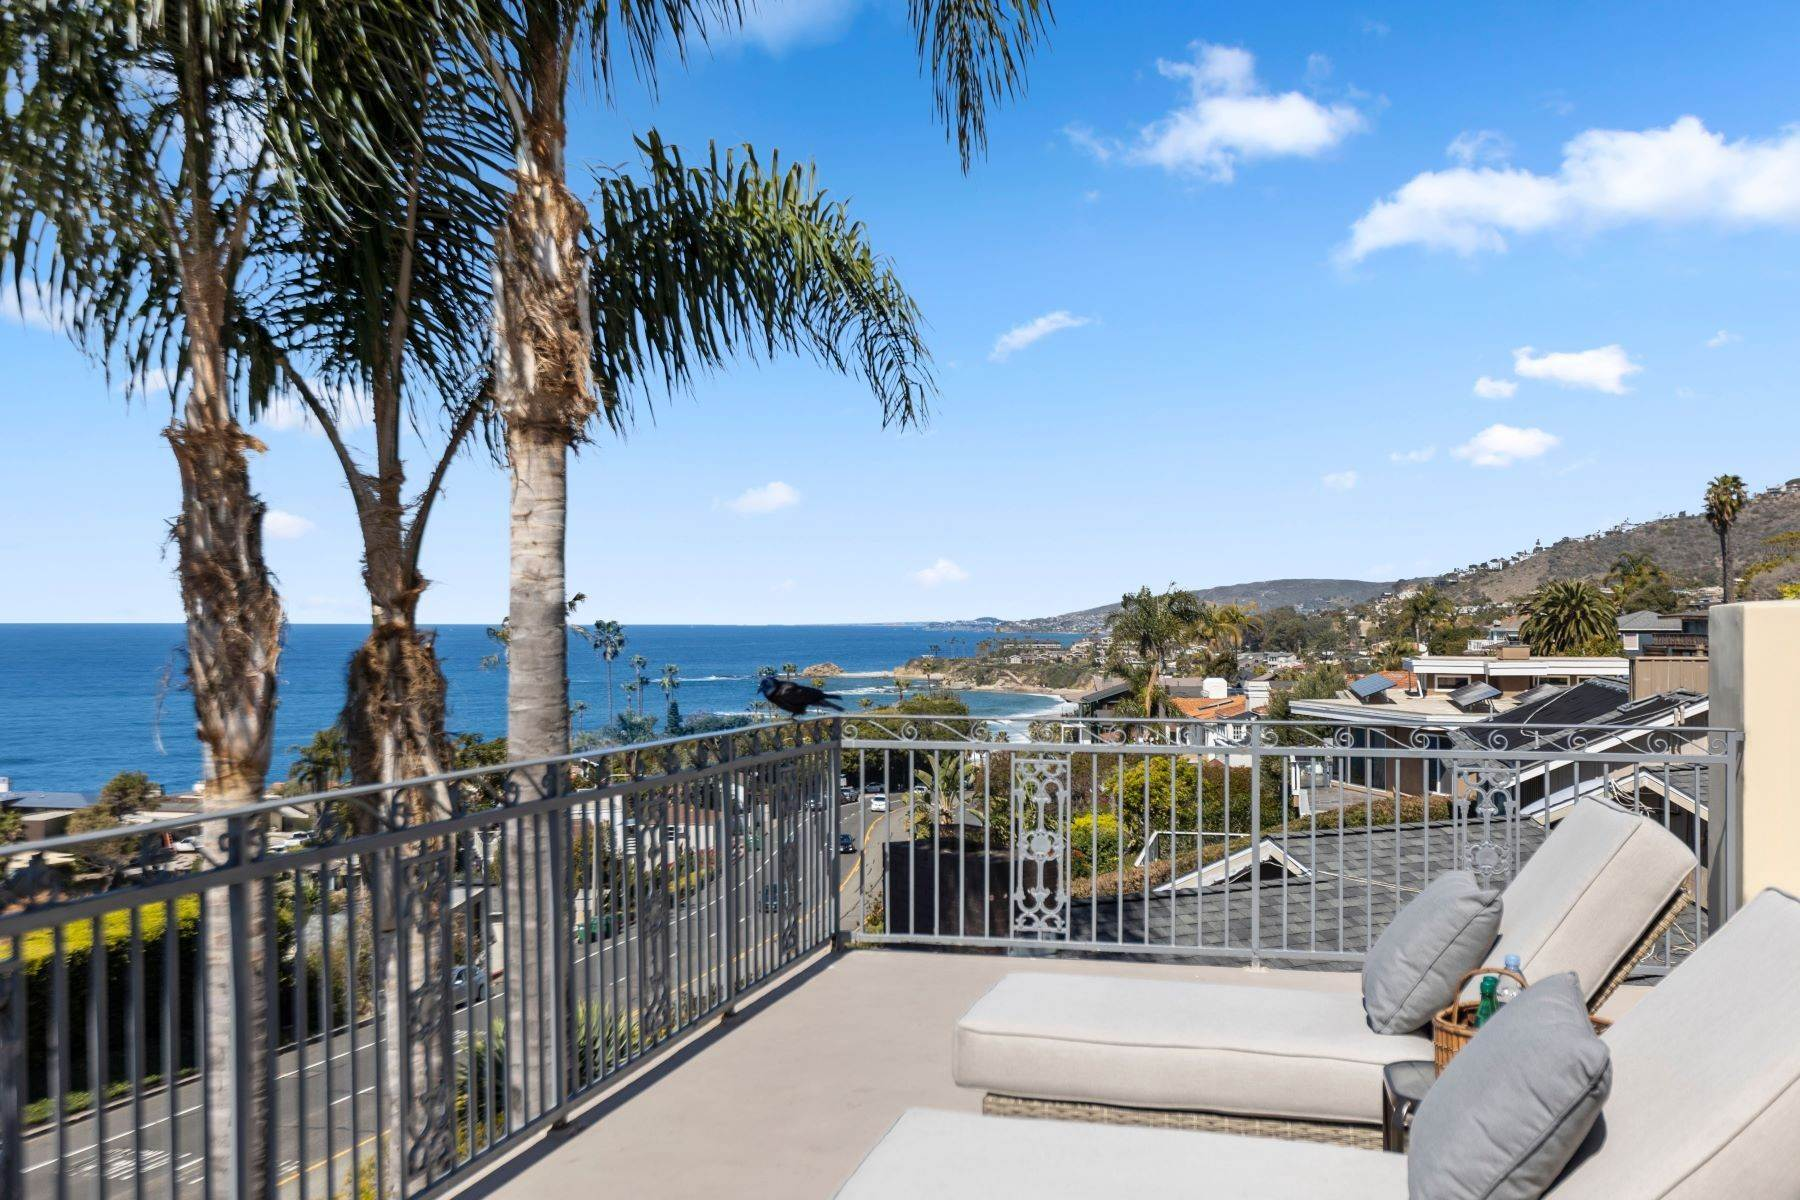 Single Family Homes for Sale at 31365 Monterey Street, Laguna Beach, CA, 92651 31365 Monterey Street Laguna Beach, California 92651 United States